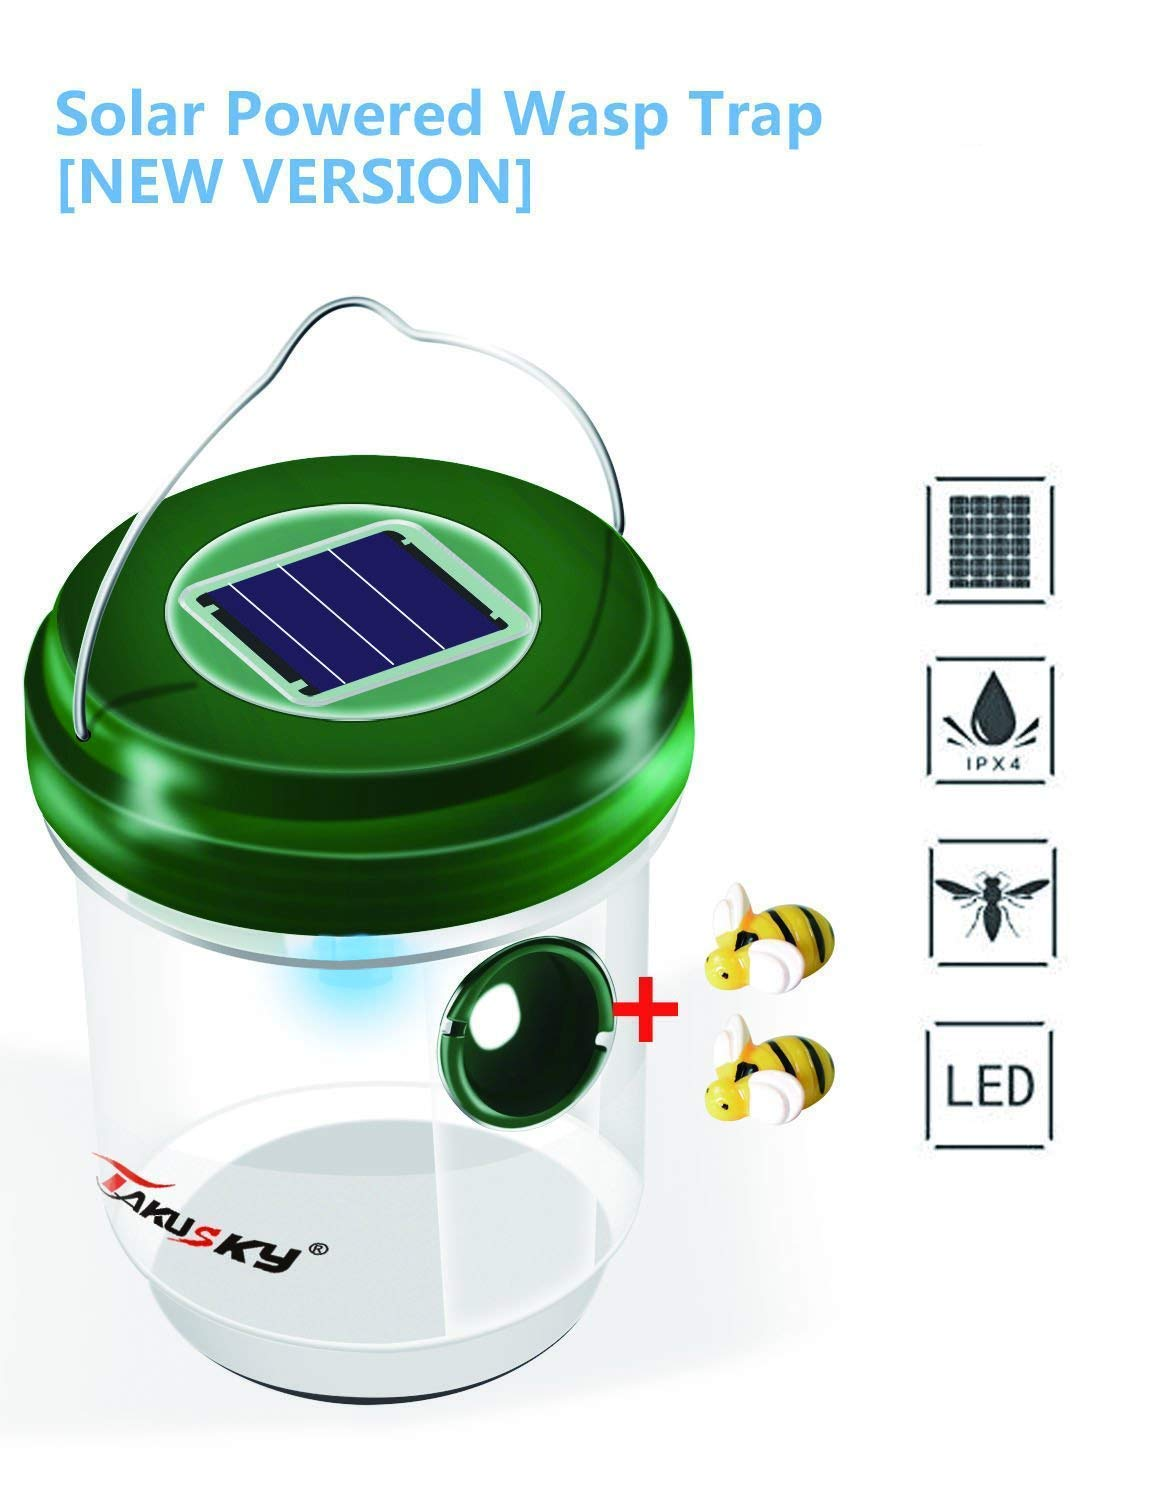 Wasp Trap Catcher,Bee Trap,Hornet Repellent,Waterproof Solar Powered Wasp Trap with Ultraviolet LED Light for Wasps,Hornets, Yellow Jackets, Bees, Bugs in Home Garden[New Version]